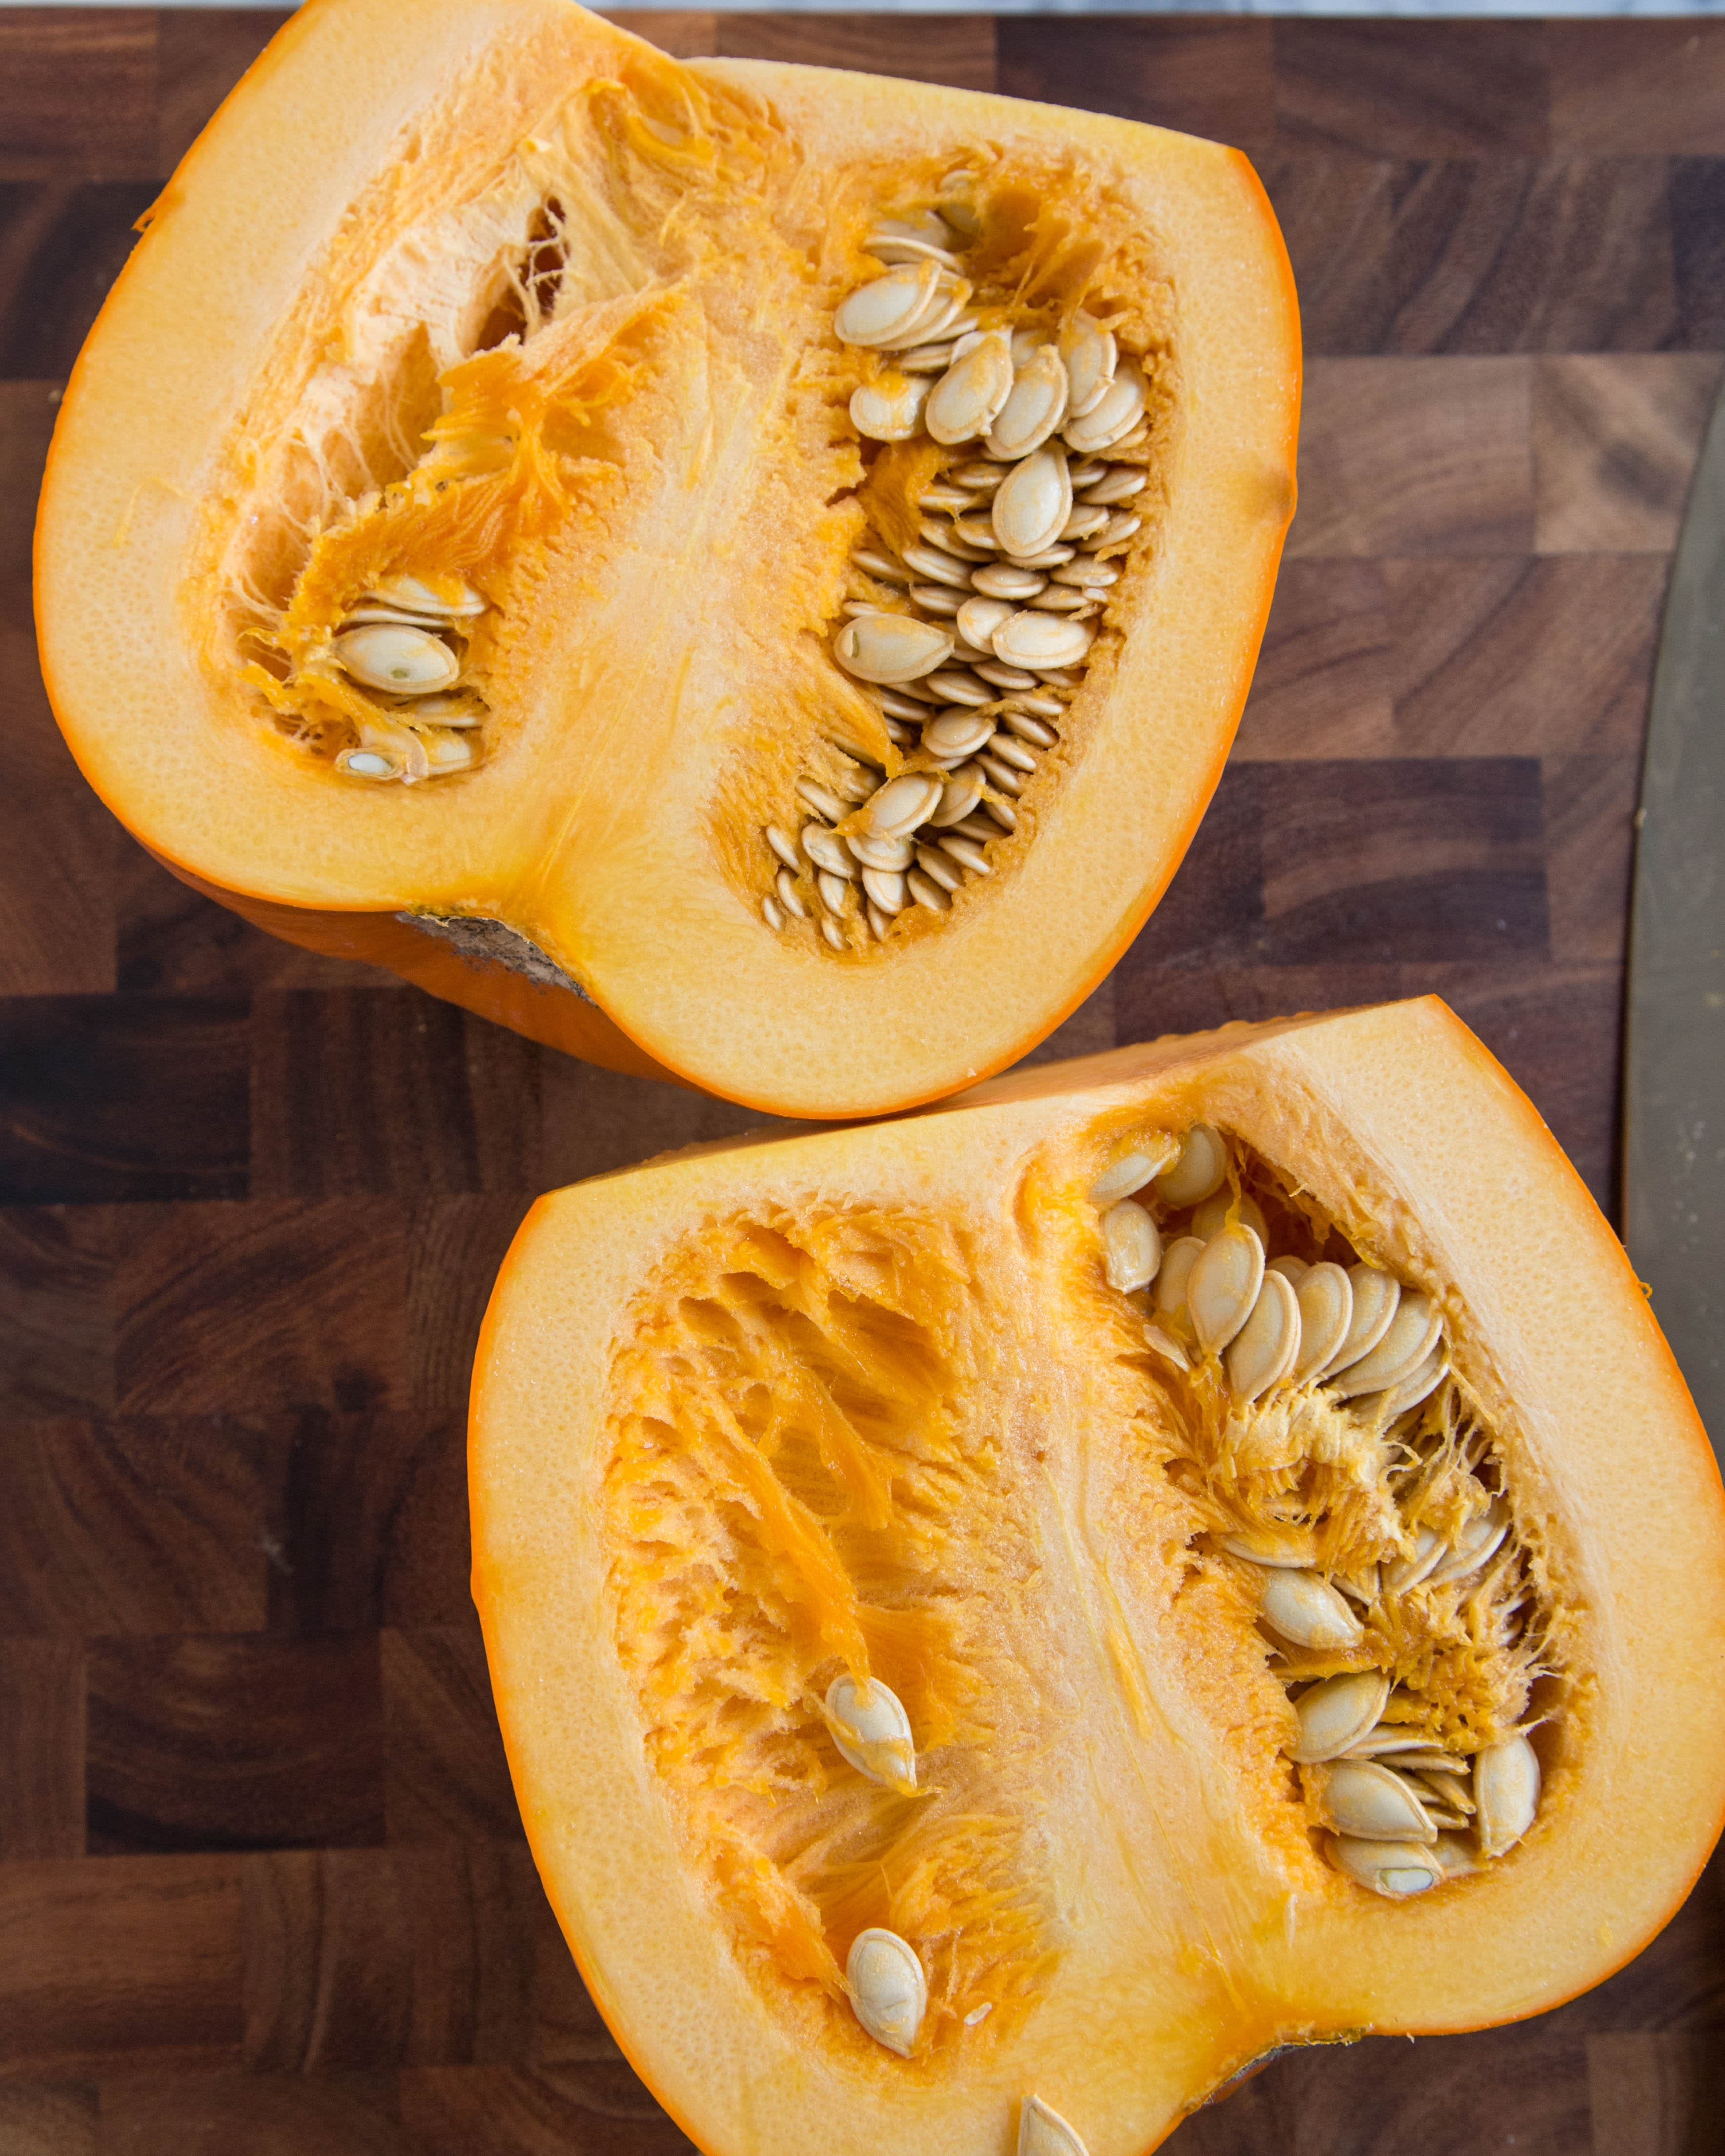 Remarkable, asian pumkin photo gallery agree, the